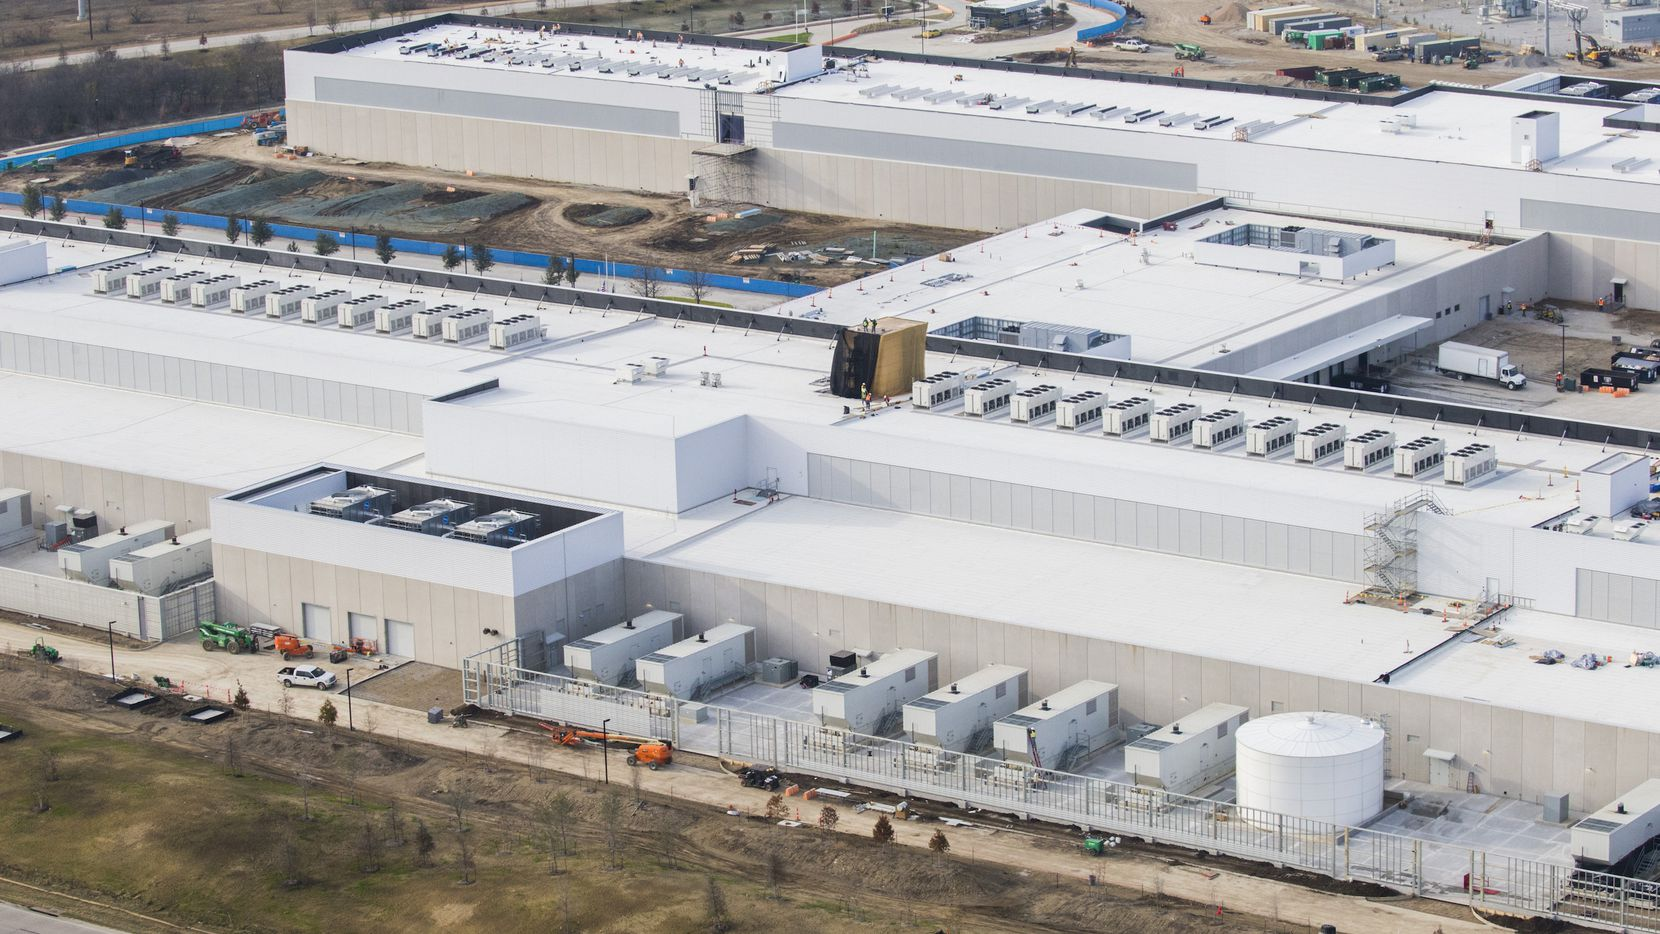 Facebook's huge data center in North Fort Worth will eventually be valued at more than $1 billion.